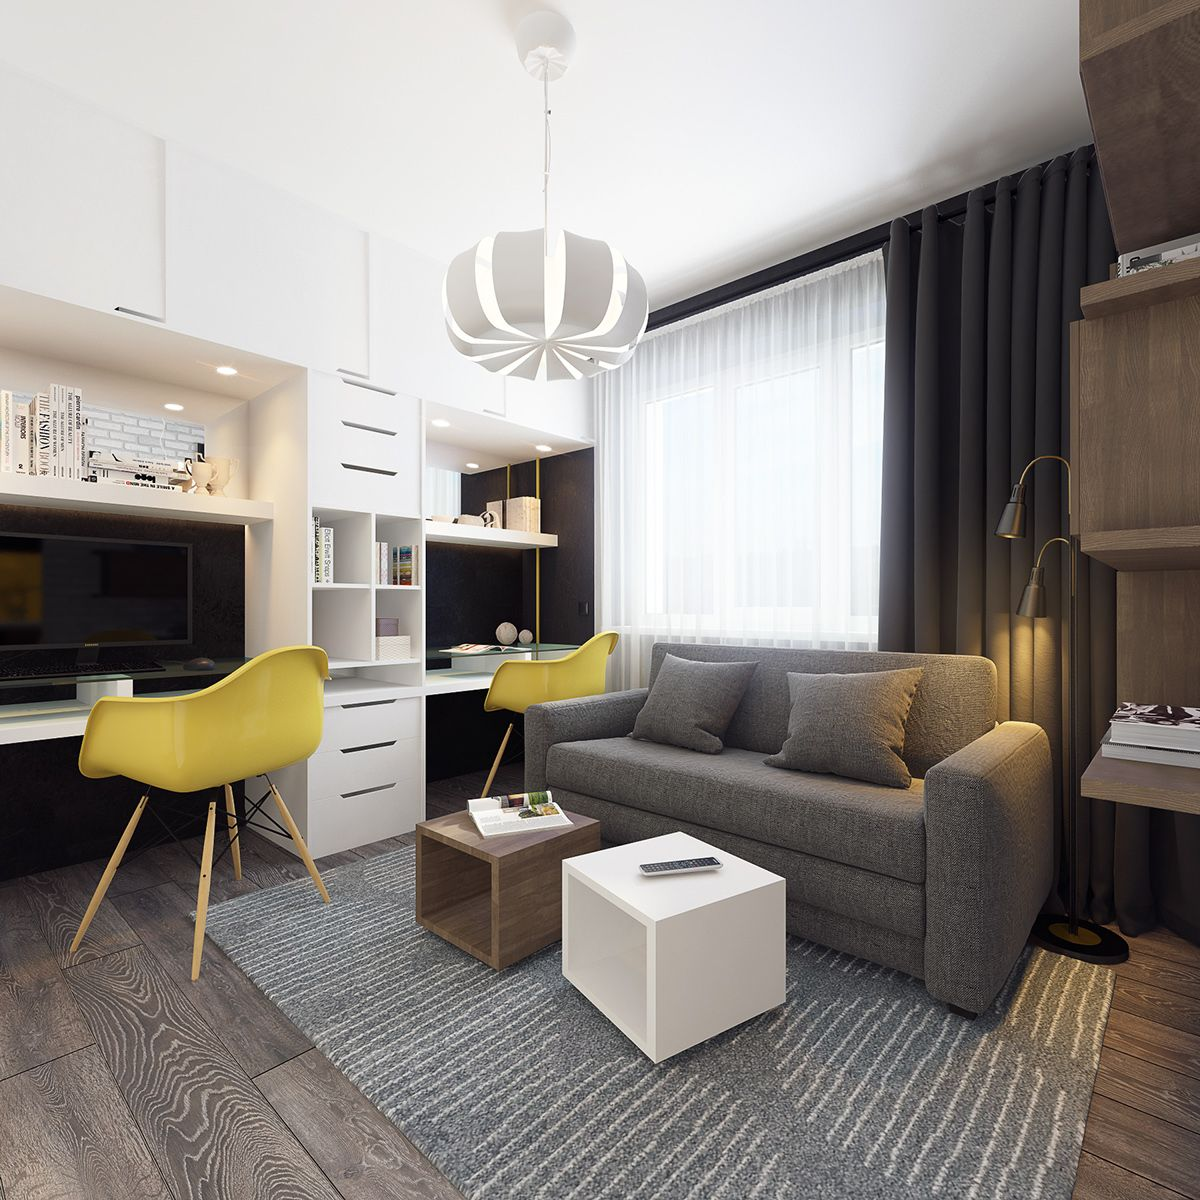 Contemporary Small Apartment Interior Design: 3d Visualization / Interior Design / Apartment 37m2 On